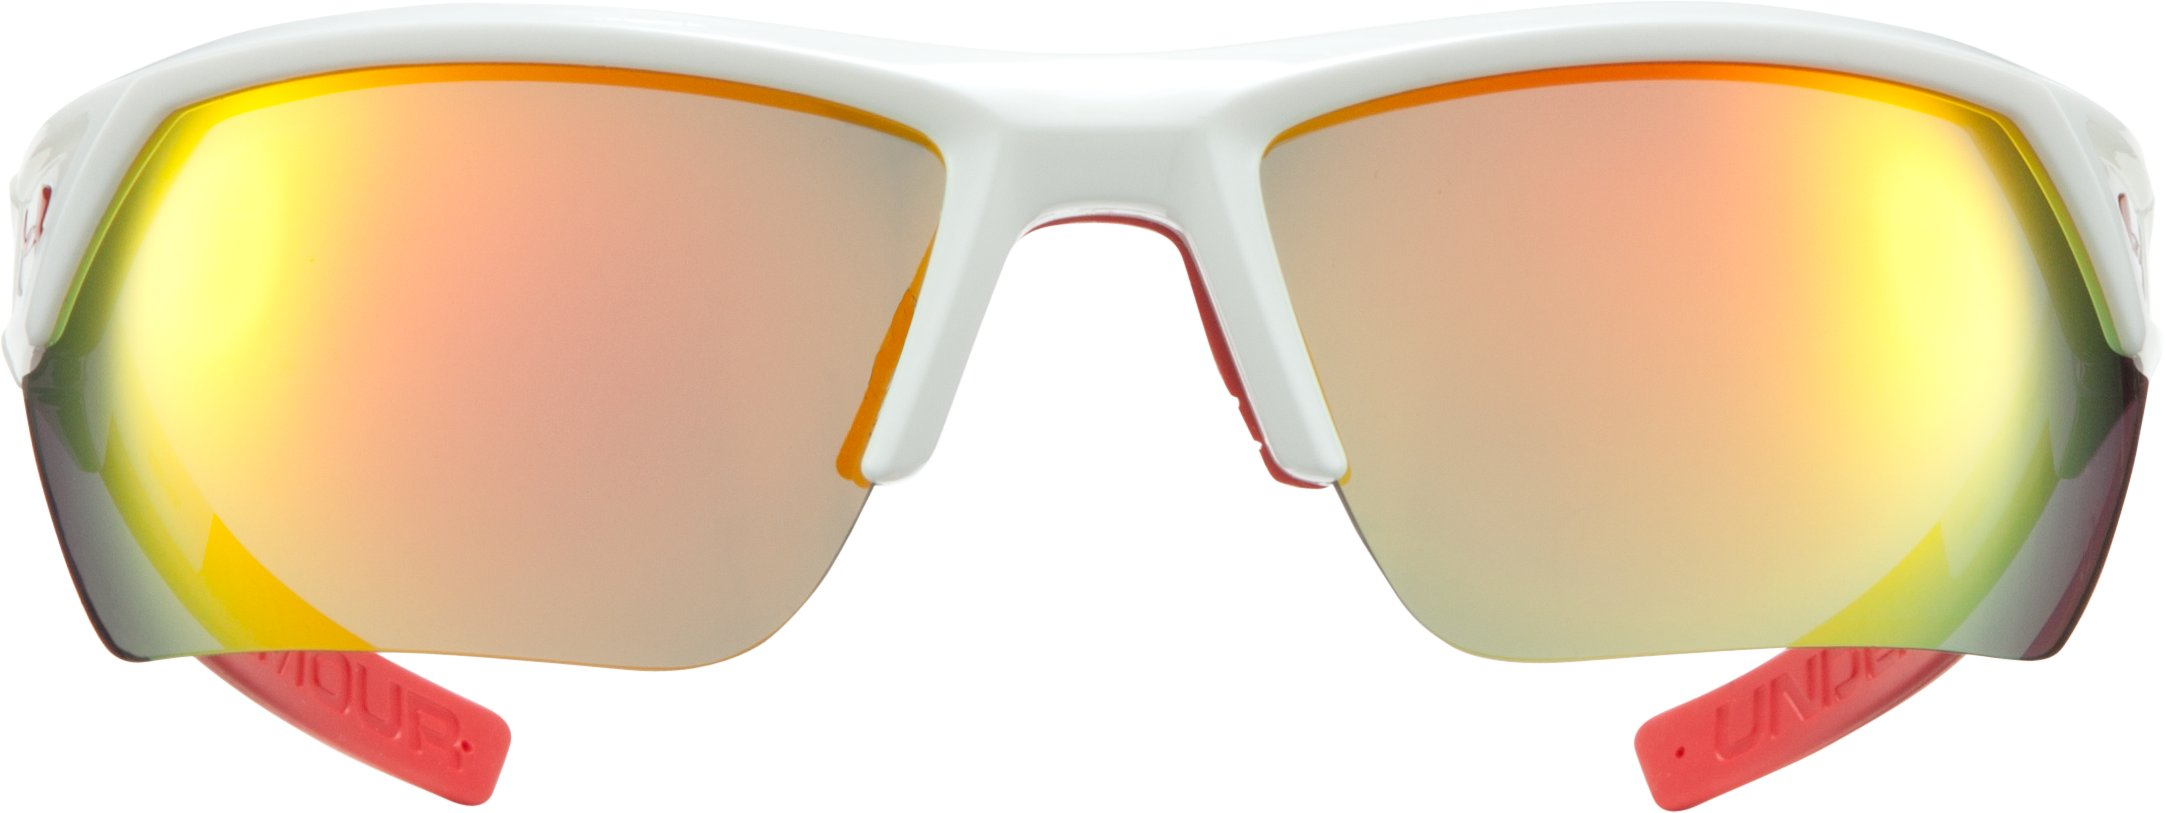 UA Igniter 2.0 Sunglasses, Shiny White,